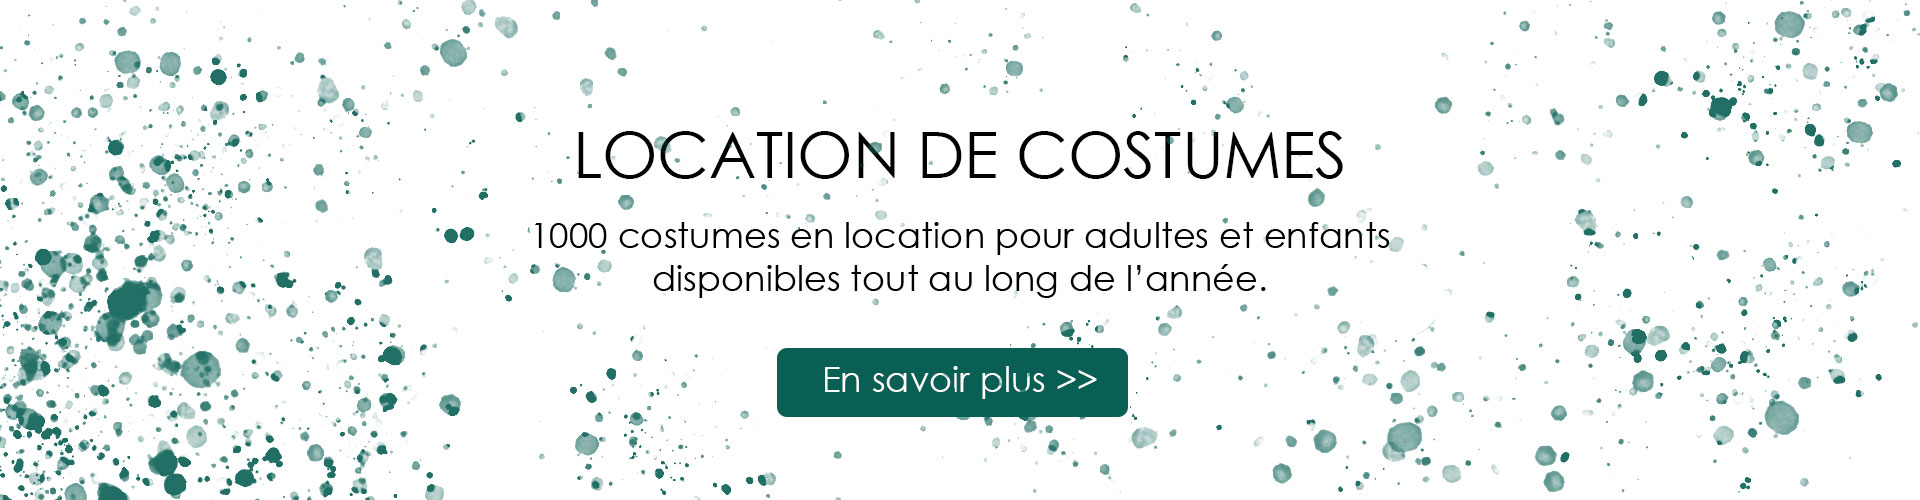 Location de costume